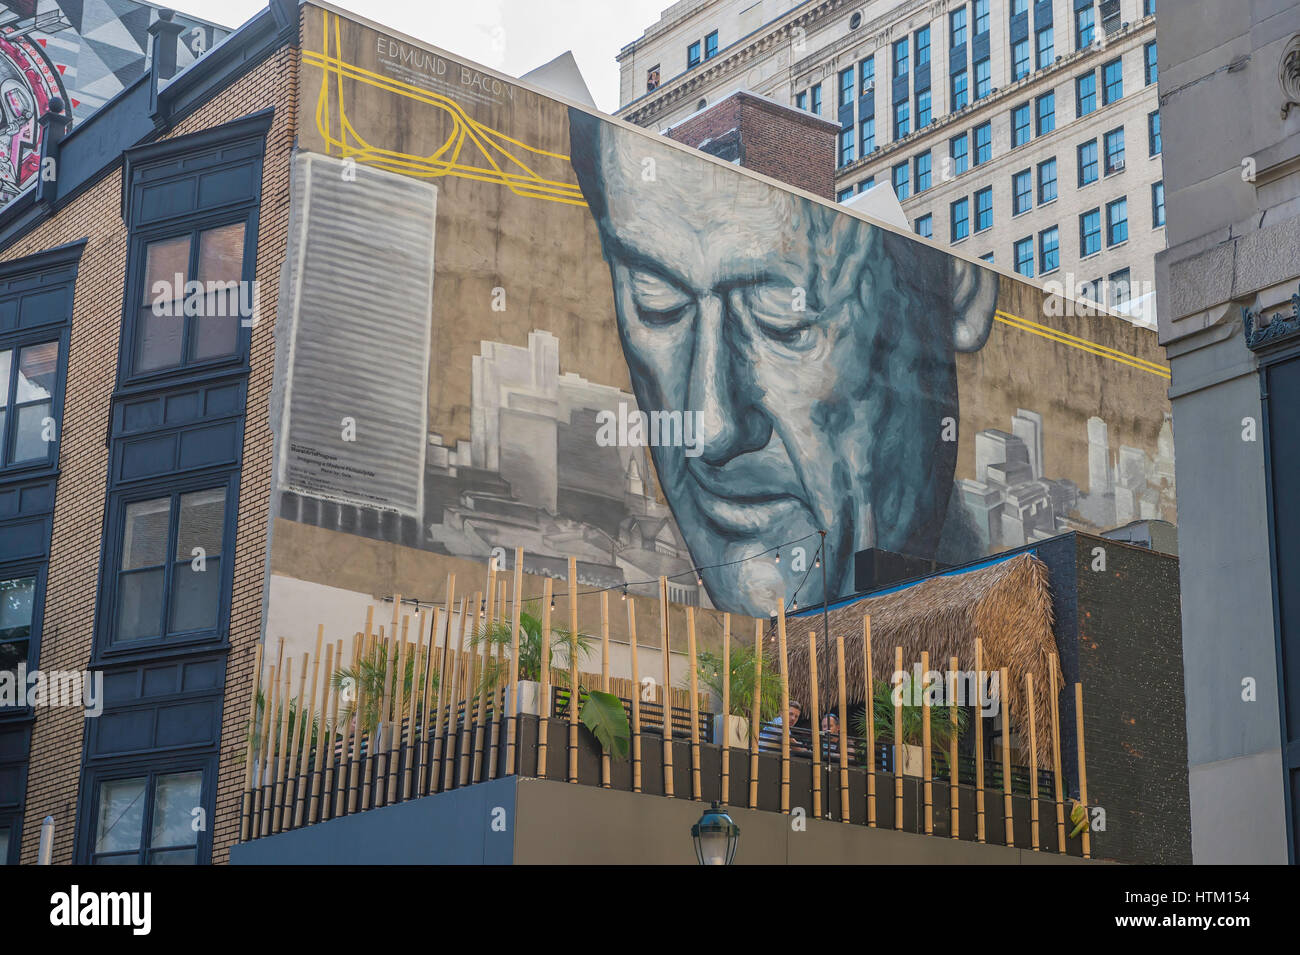 The Father of Modern Philadelphia, mural by Gala, of urban planner Edmund Bacon, 13th and Drury Streets, Center - Stock Image